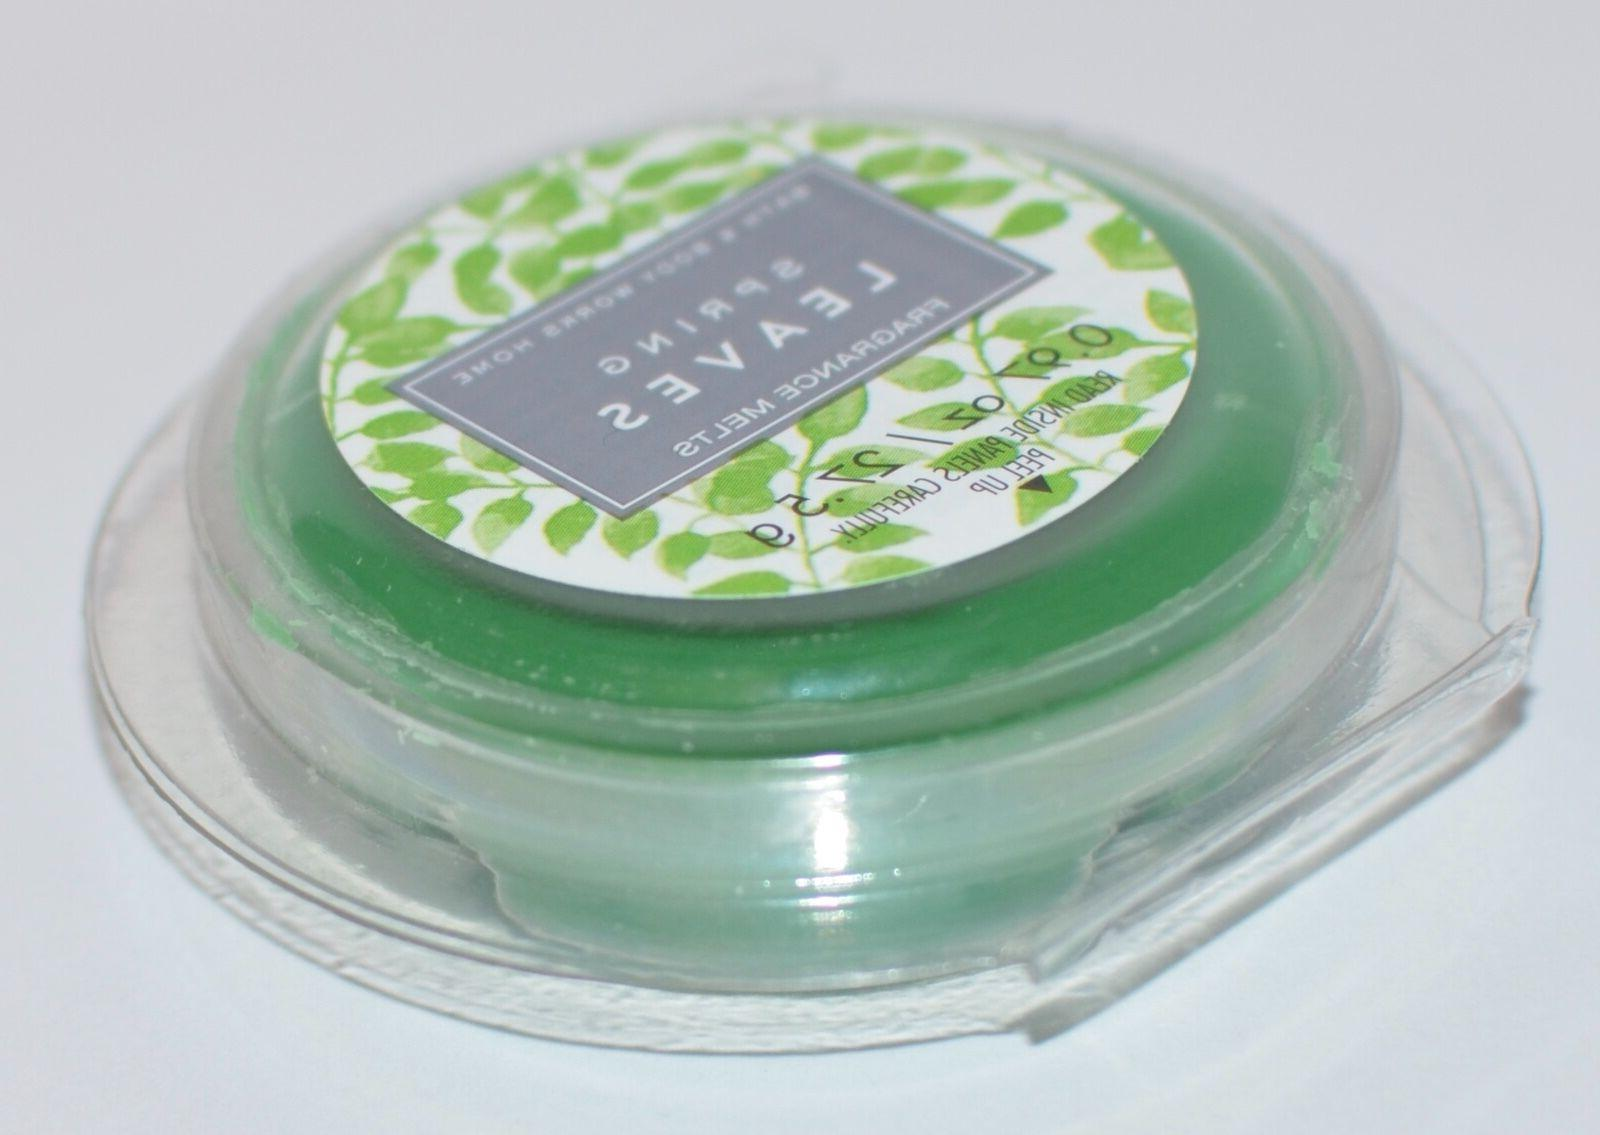 LOT OF BATH & BODY WORKS SPRING LEAVES MELTS WHITE REFILL